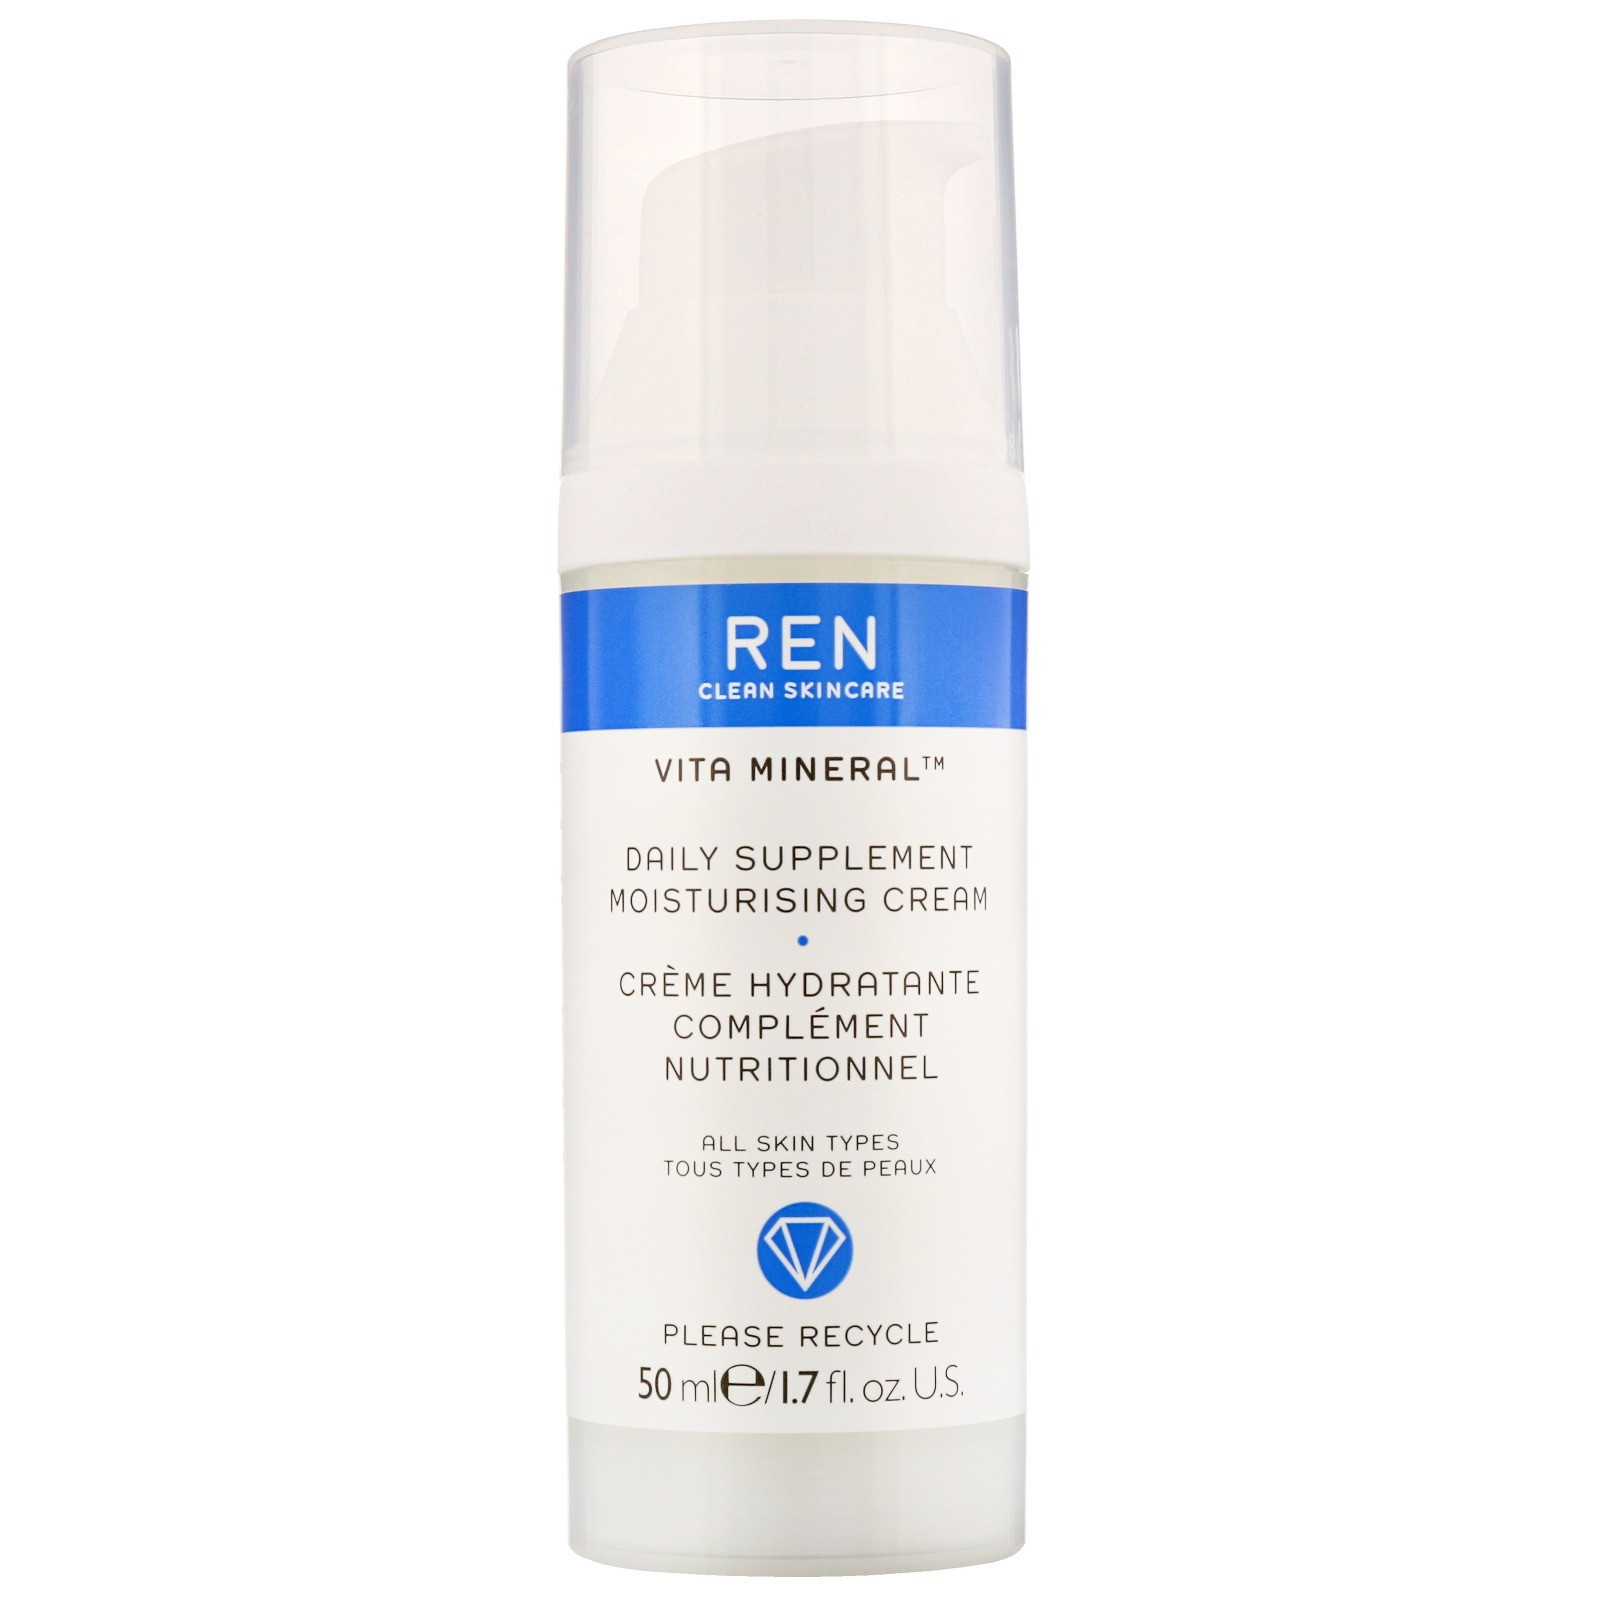 REN Clean Skincare Face Vita Mineral Daily Supplement Moisturising Cream 50ml / 1.7 fl.oz.